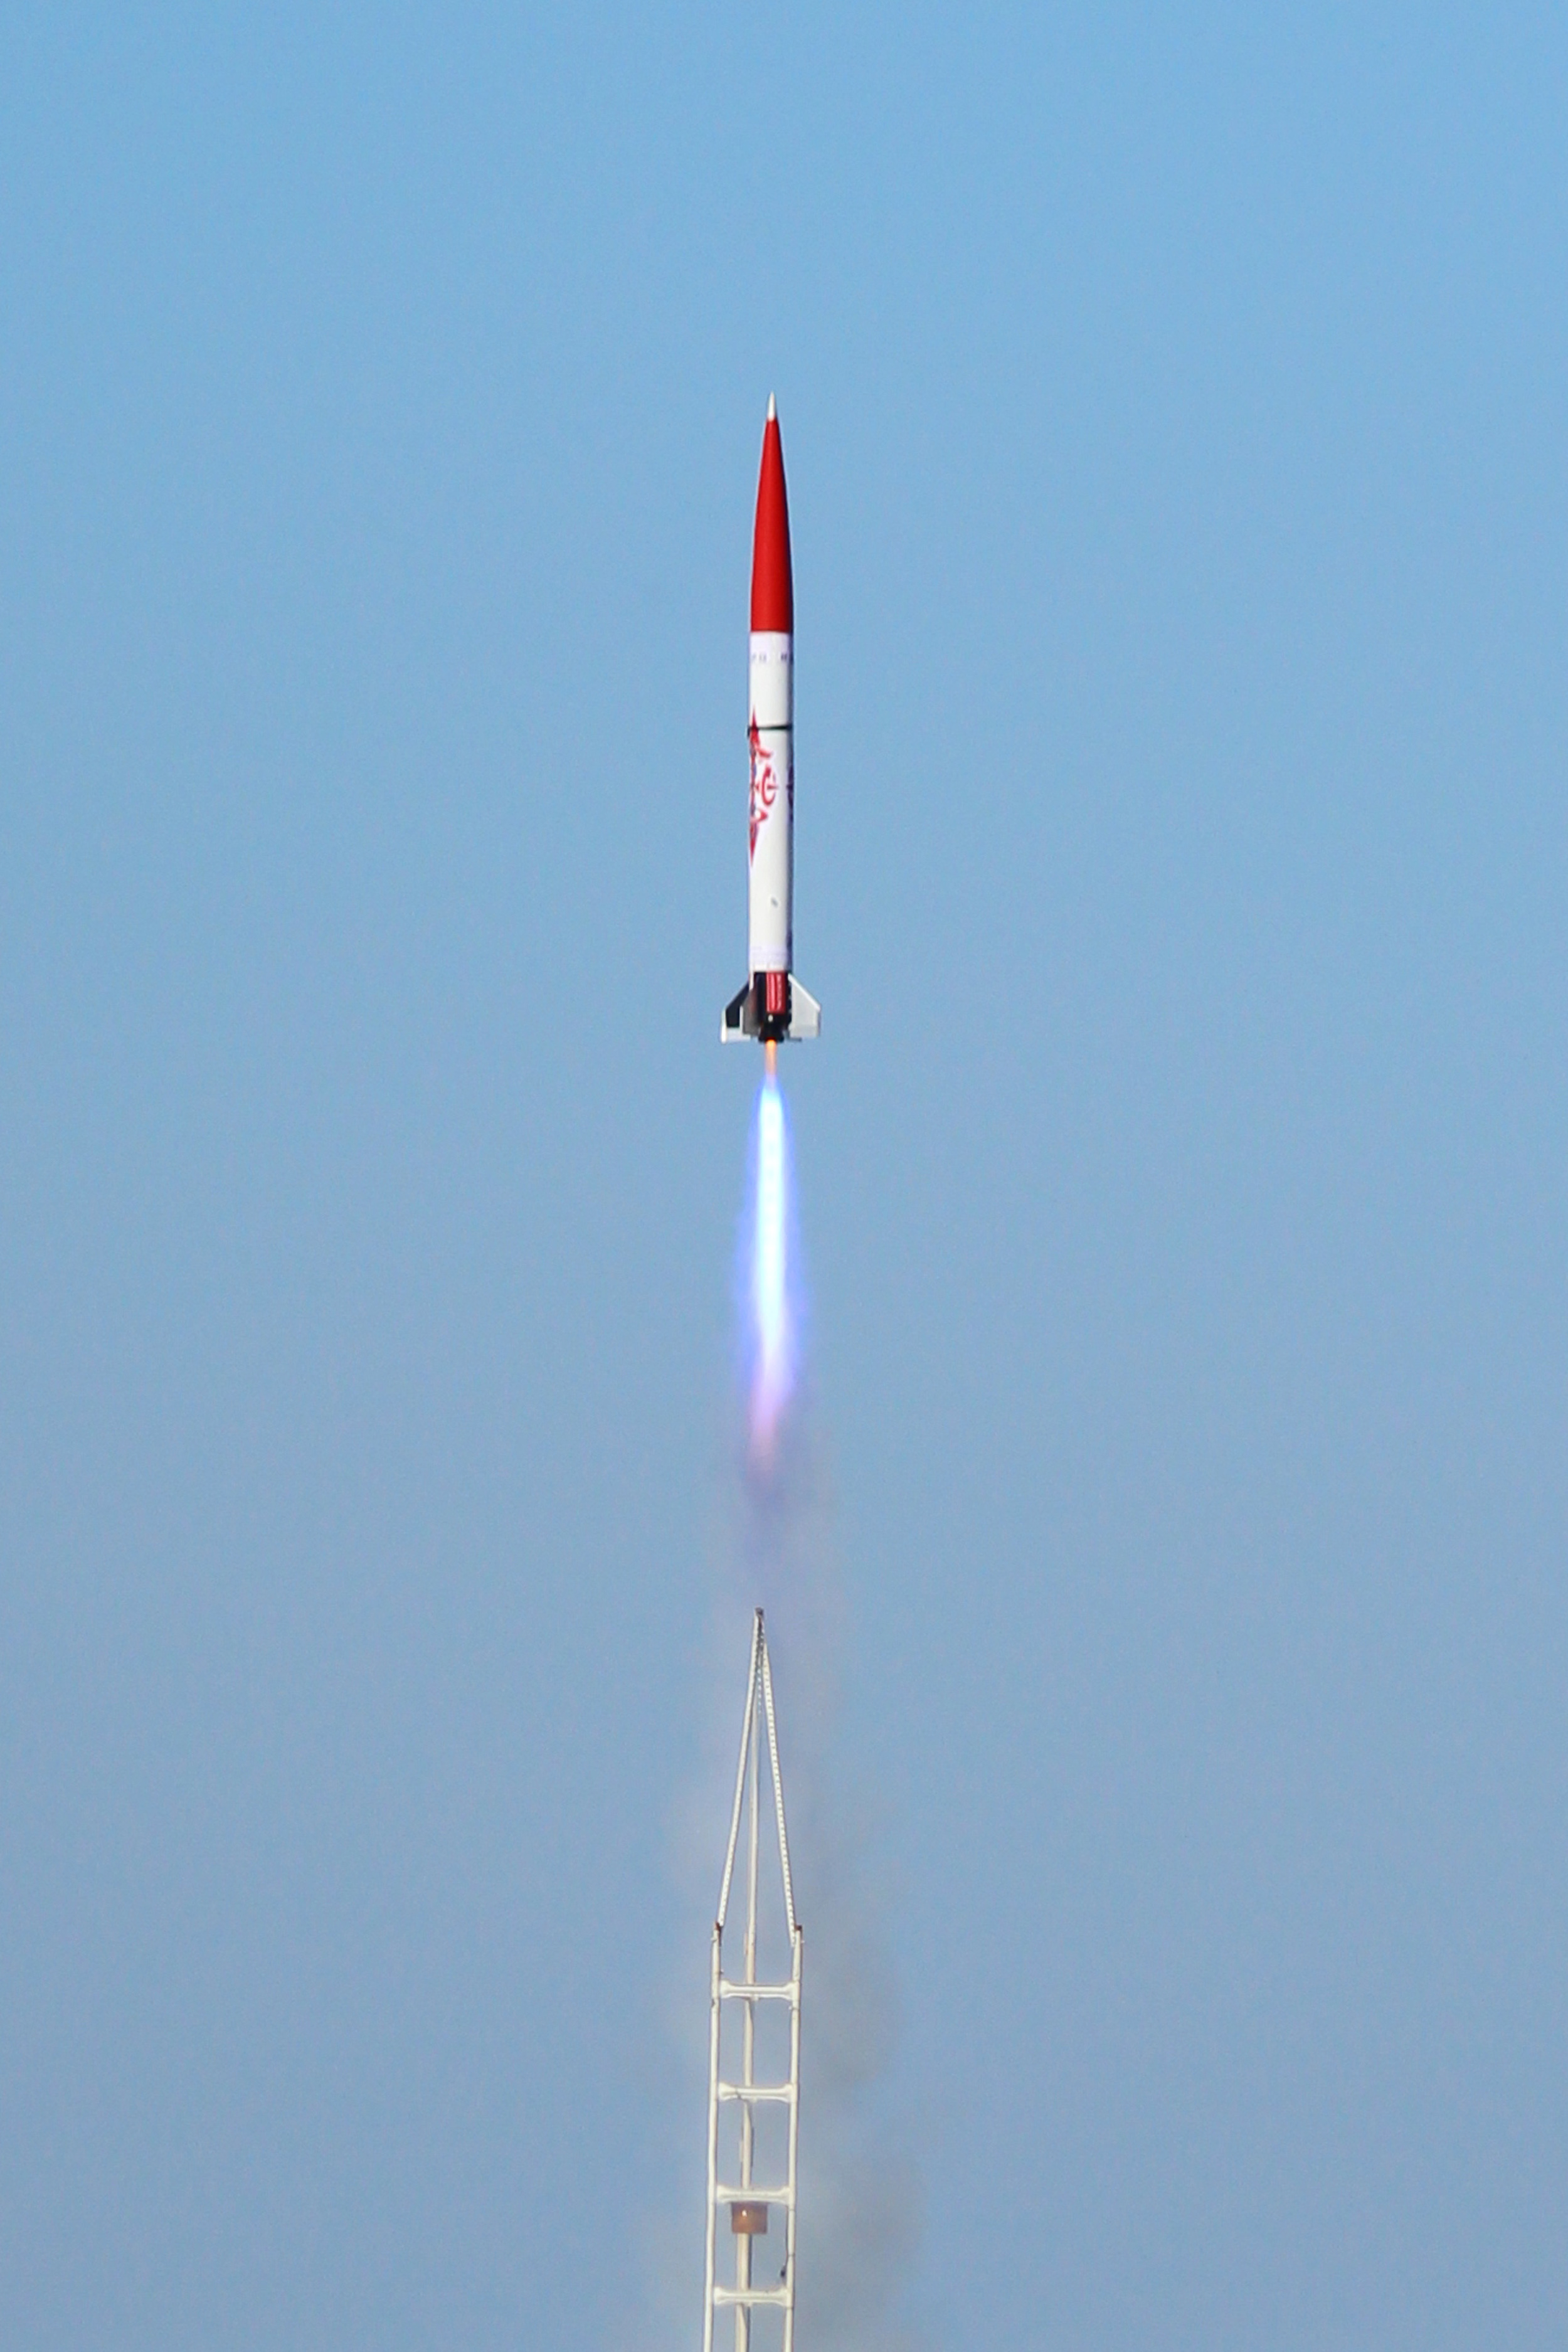 First flight test of ASTRo